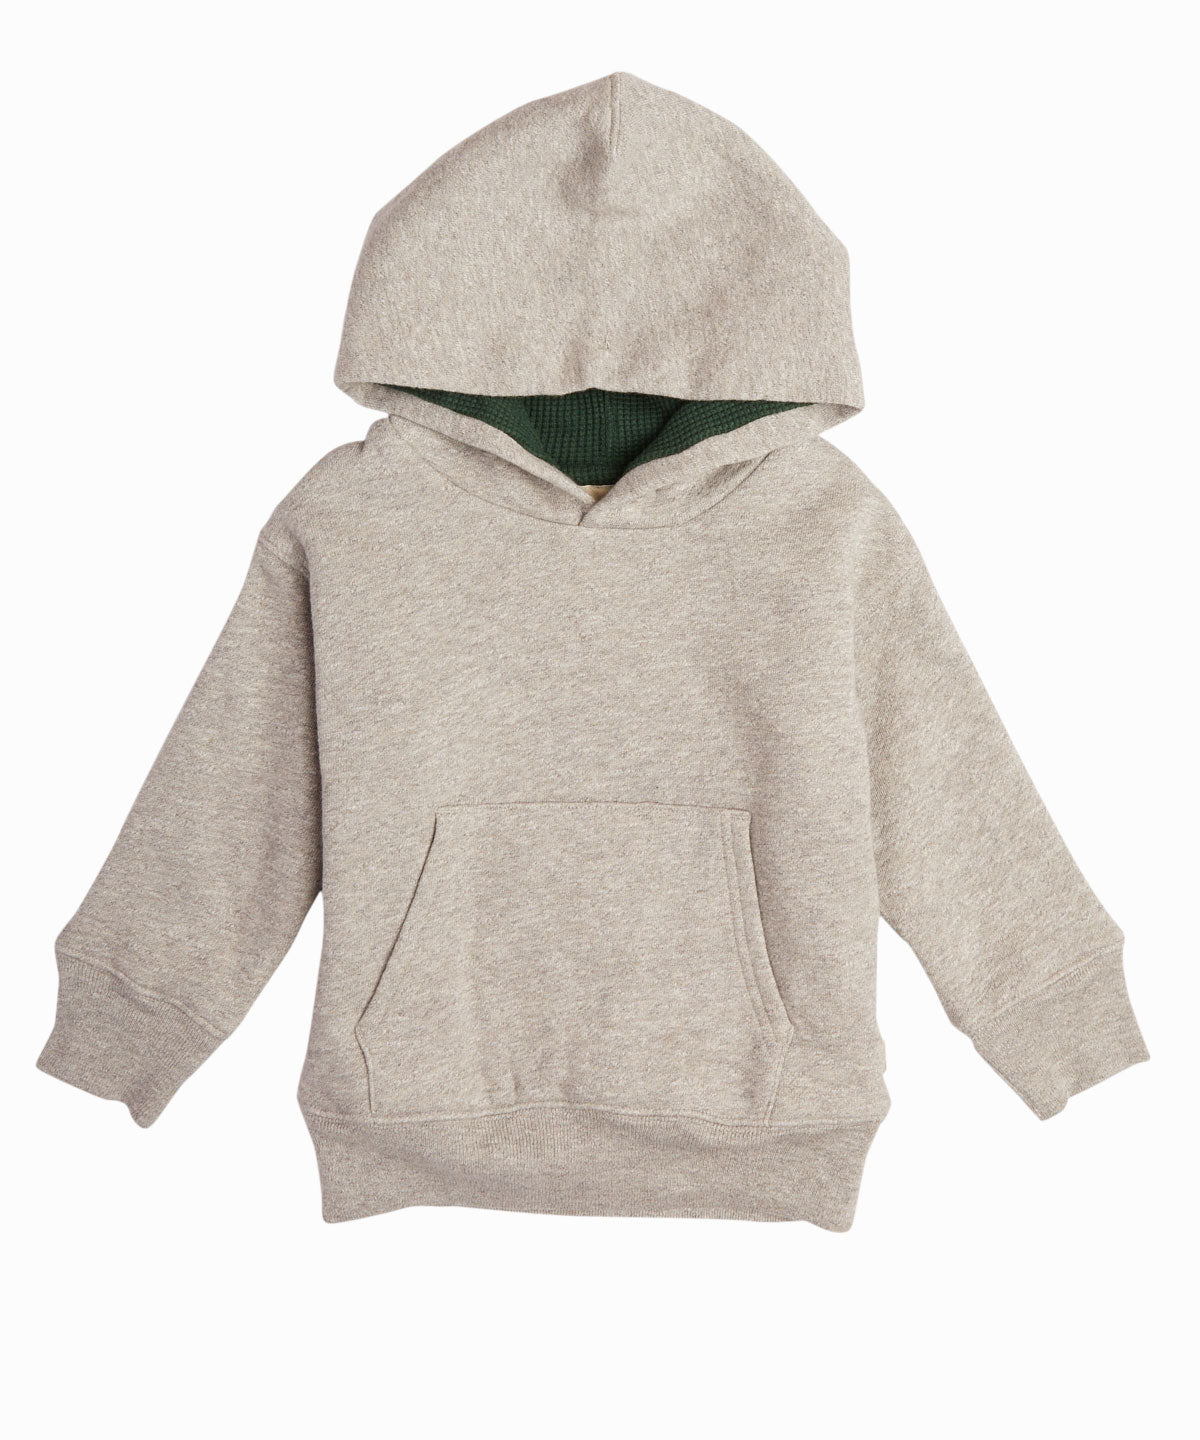 Beazy Hooded Sweatshirt